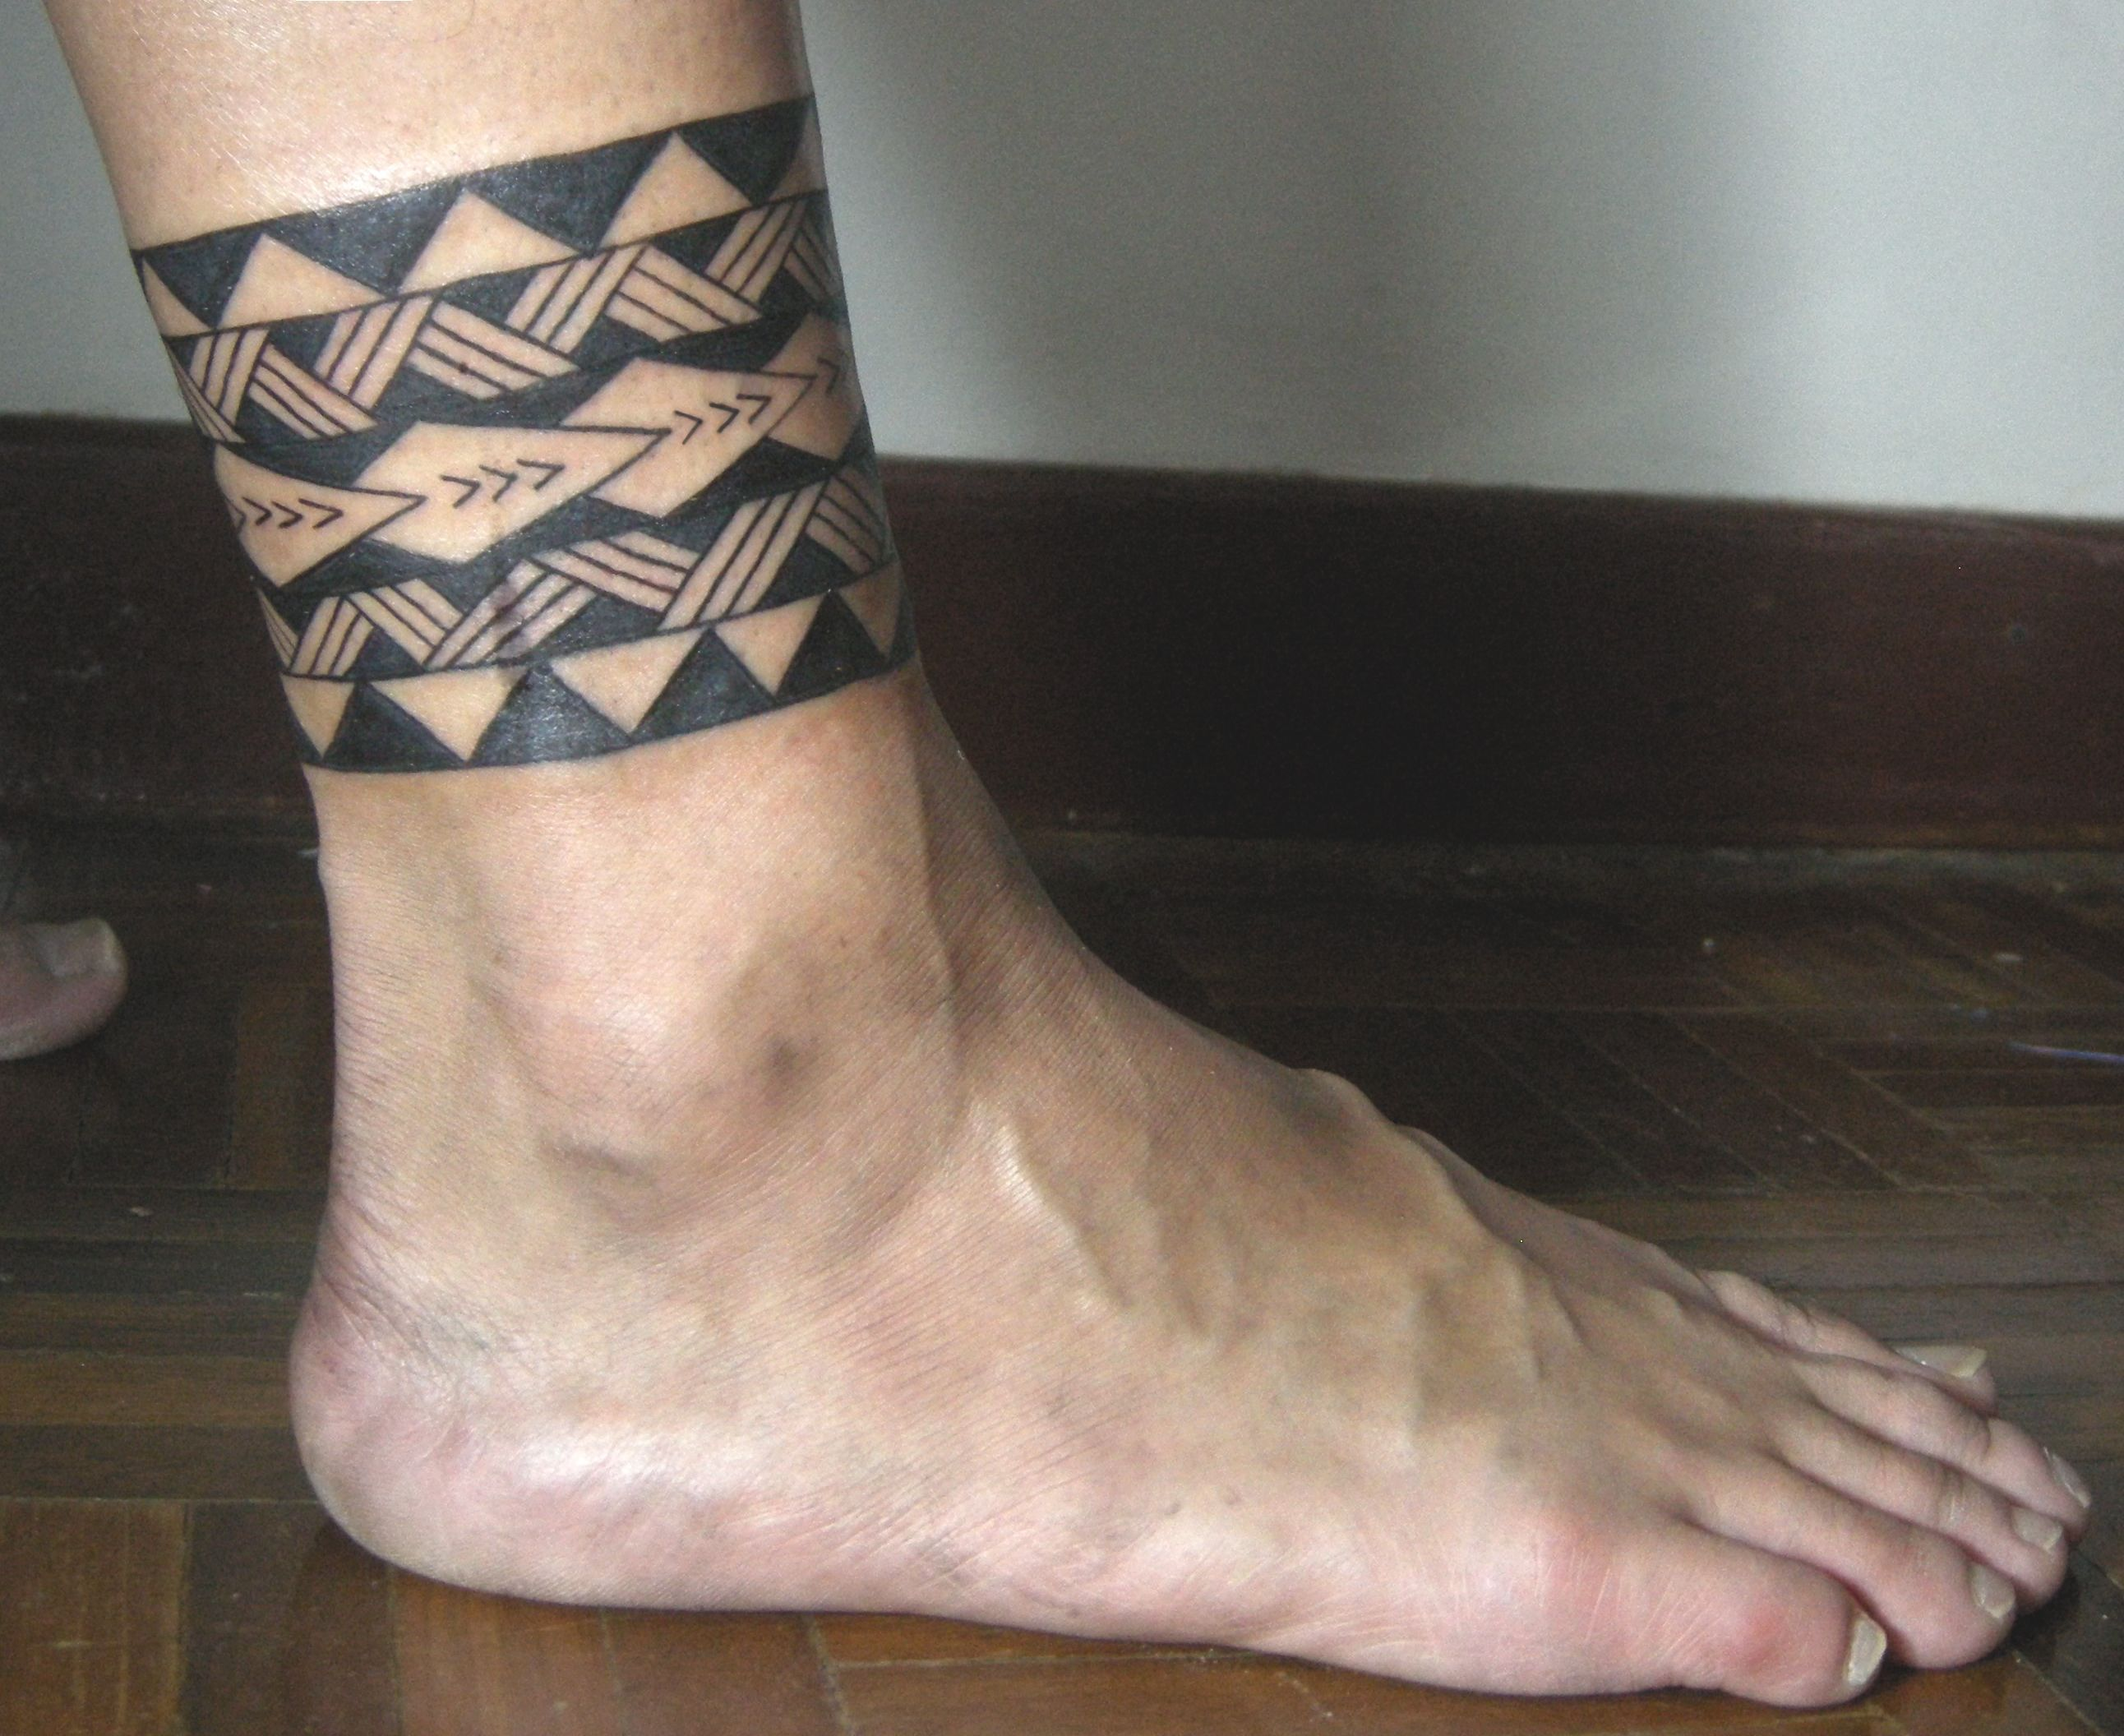 Tribal Leg Band Tattoo Tribal Band Tattoo Polynesian Tribal Polynesiantattoosdesigns Tribal Band Tattoo Ankle Band Tattoo Maori Tattoo